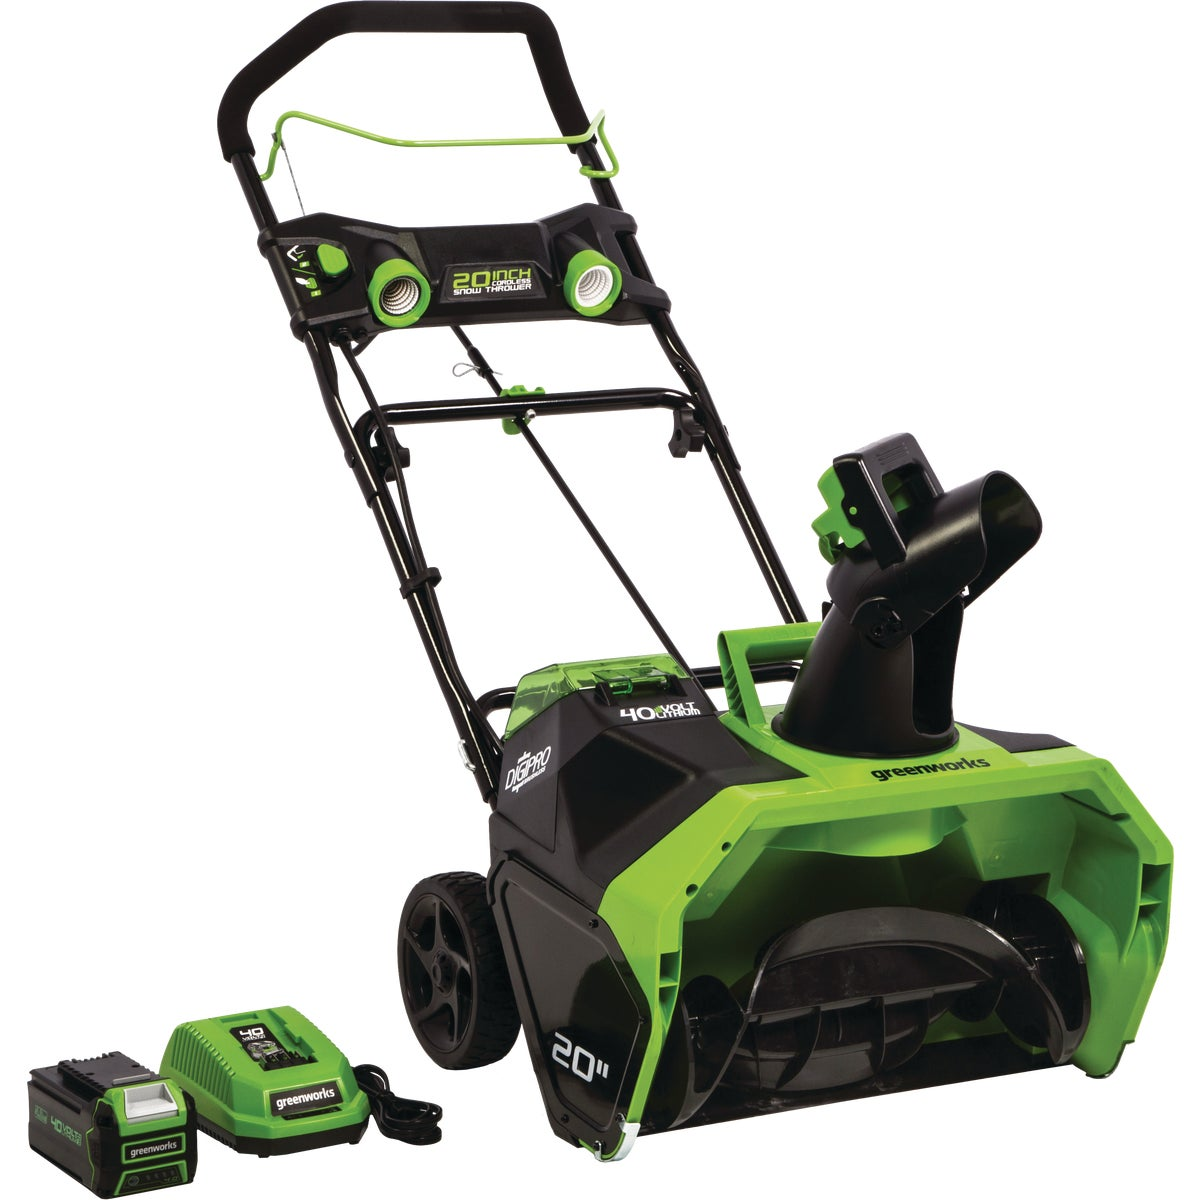 Greenworks DigiPro G-MAX 40V Cordless Snow Blower, 26272